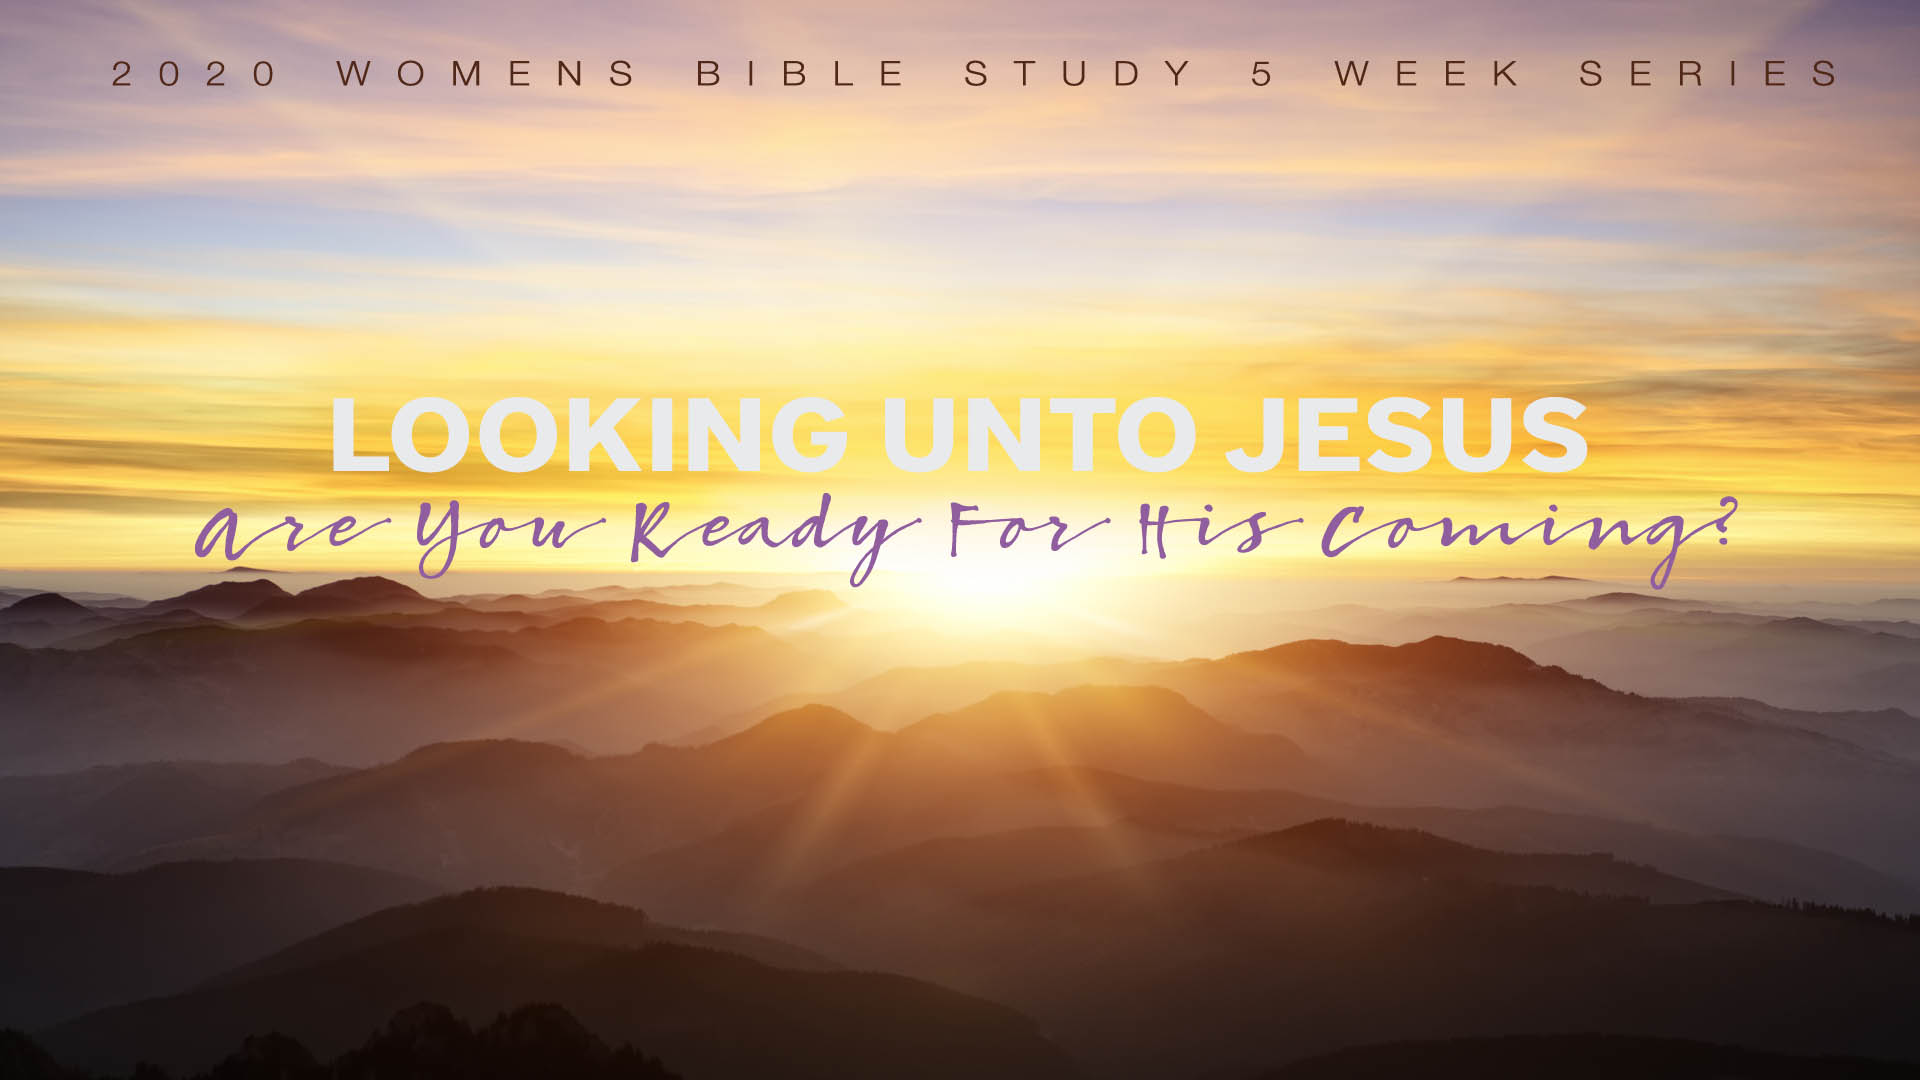 Women's Bible Study: Looking Unto Jesus! Are You Ready for His Coming?